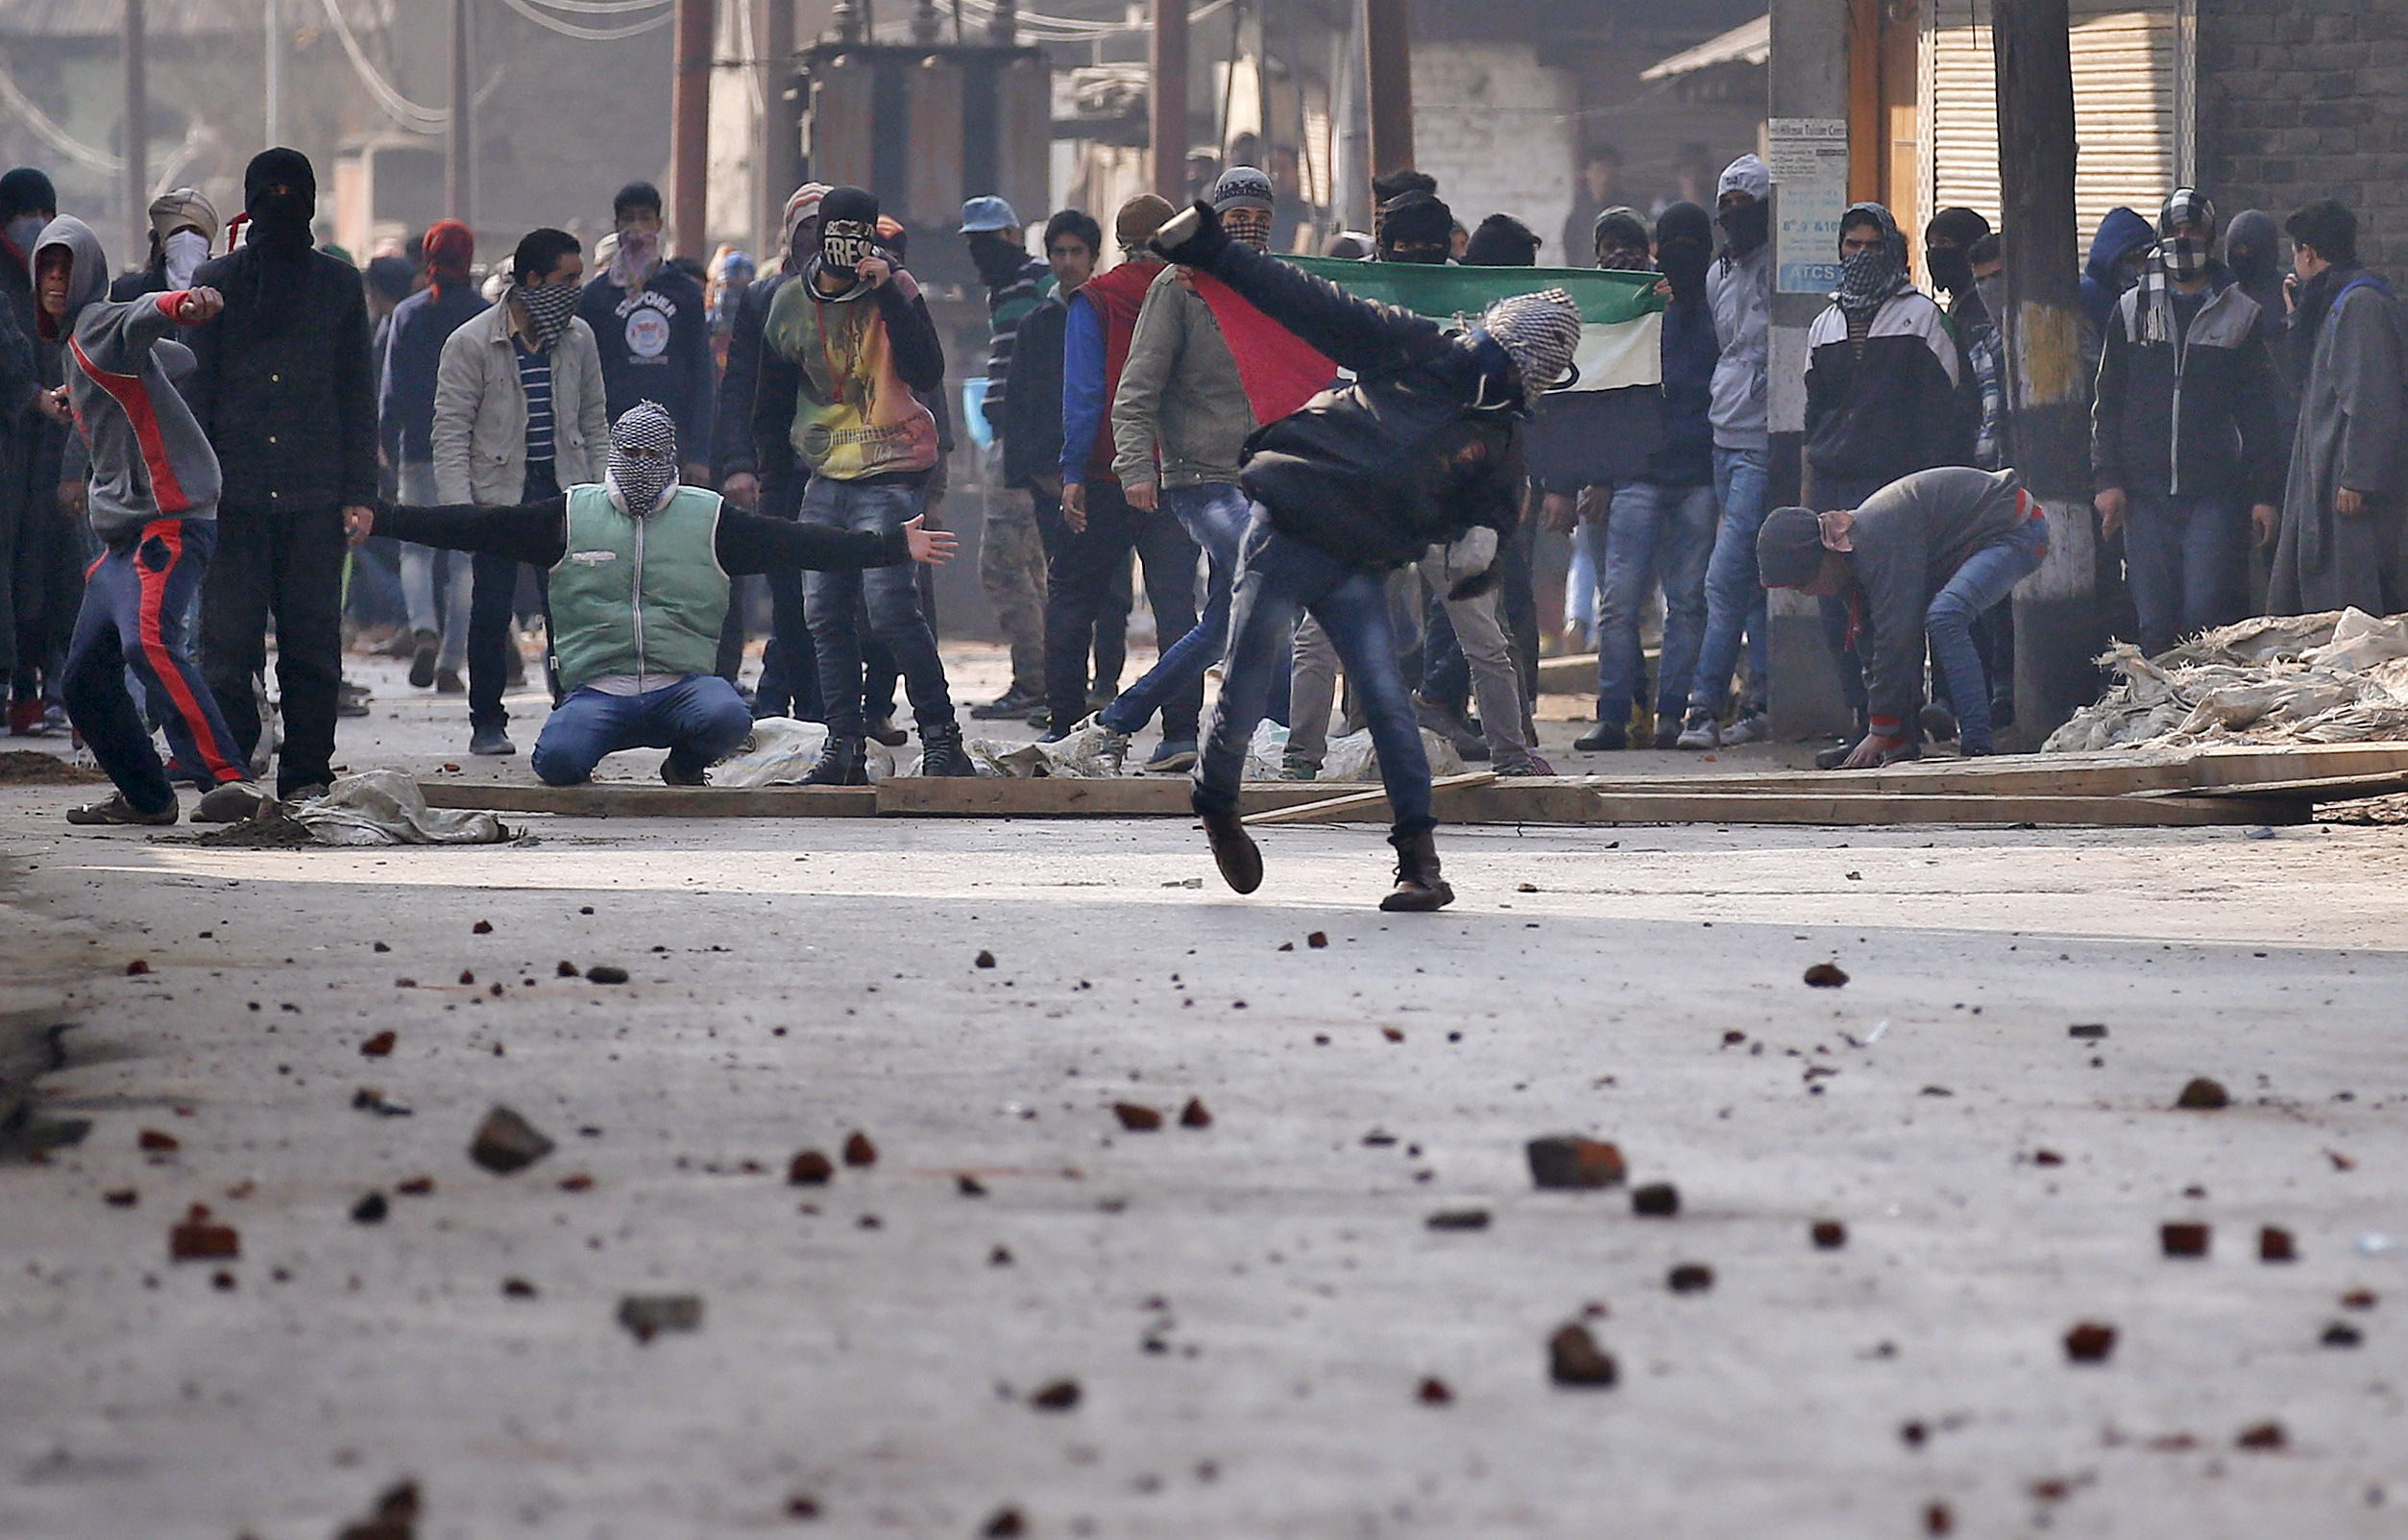 A Kashmiri protester throws a stone towards Indian police during a protest in Srinagar, January 15, 2016. The protesters demonstrated after Friday prayers demanding what they said was freedom from Indian rule in Kashmir. REUTERS/Danish Ismail - RTX22ILB